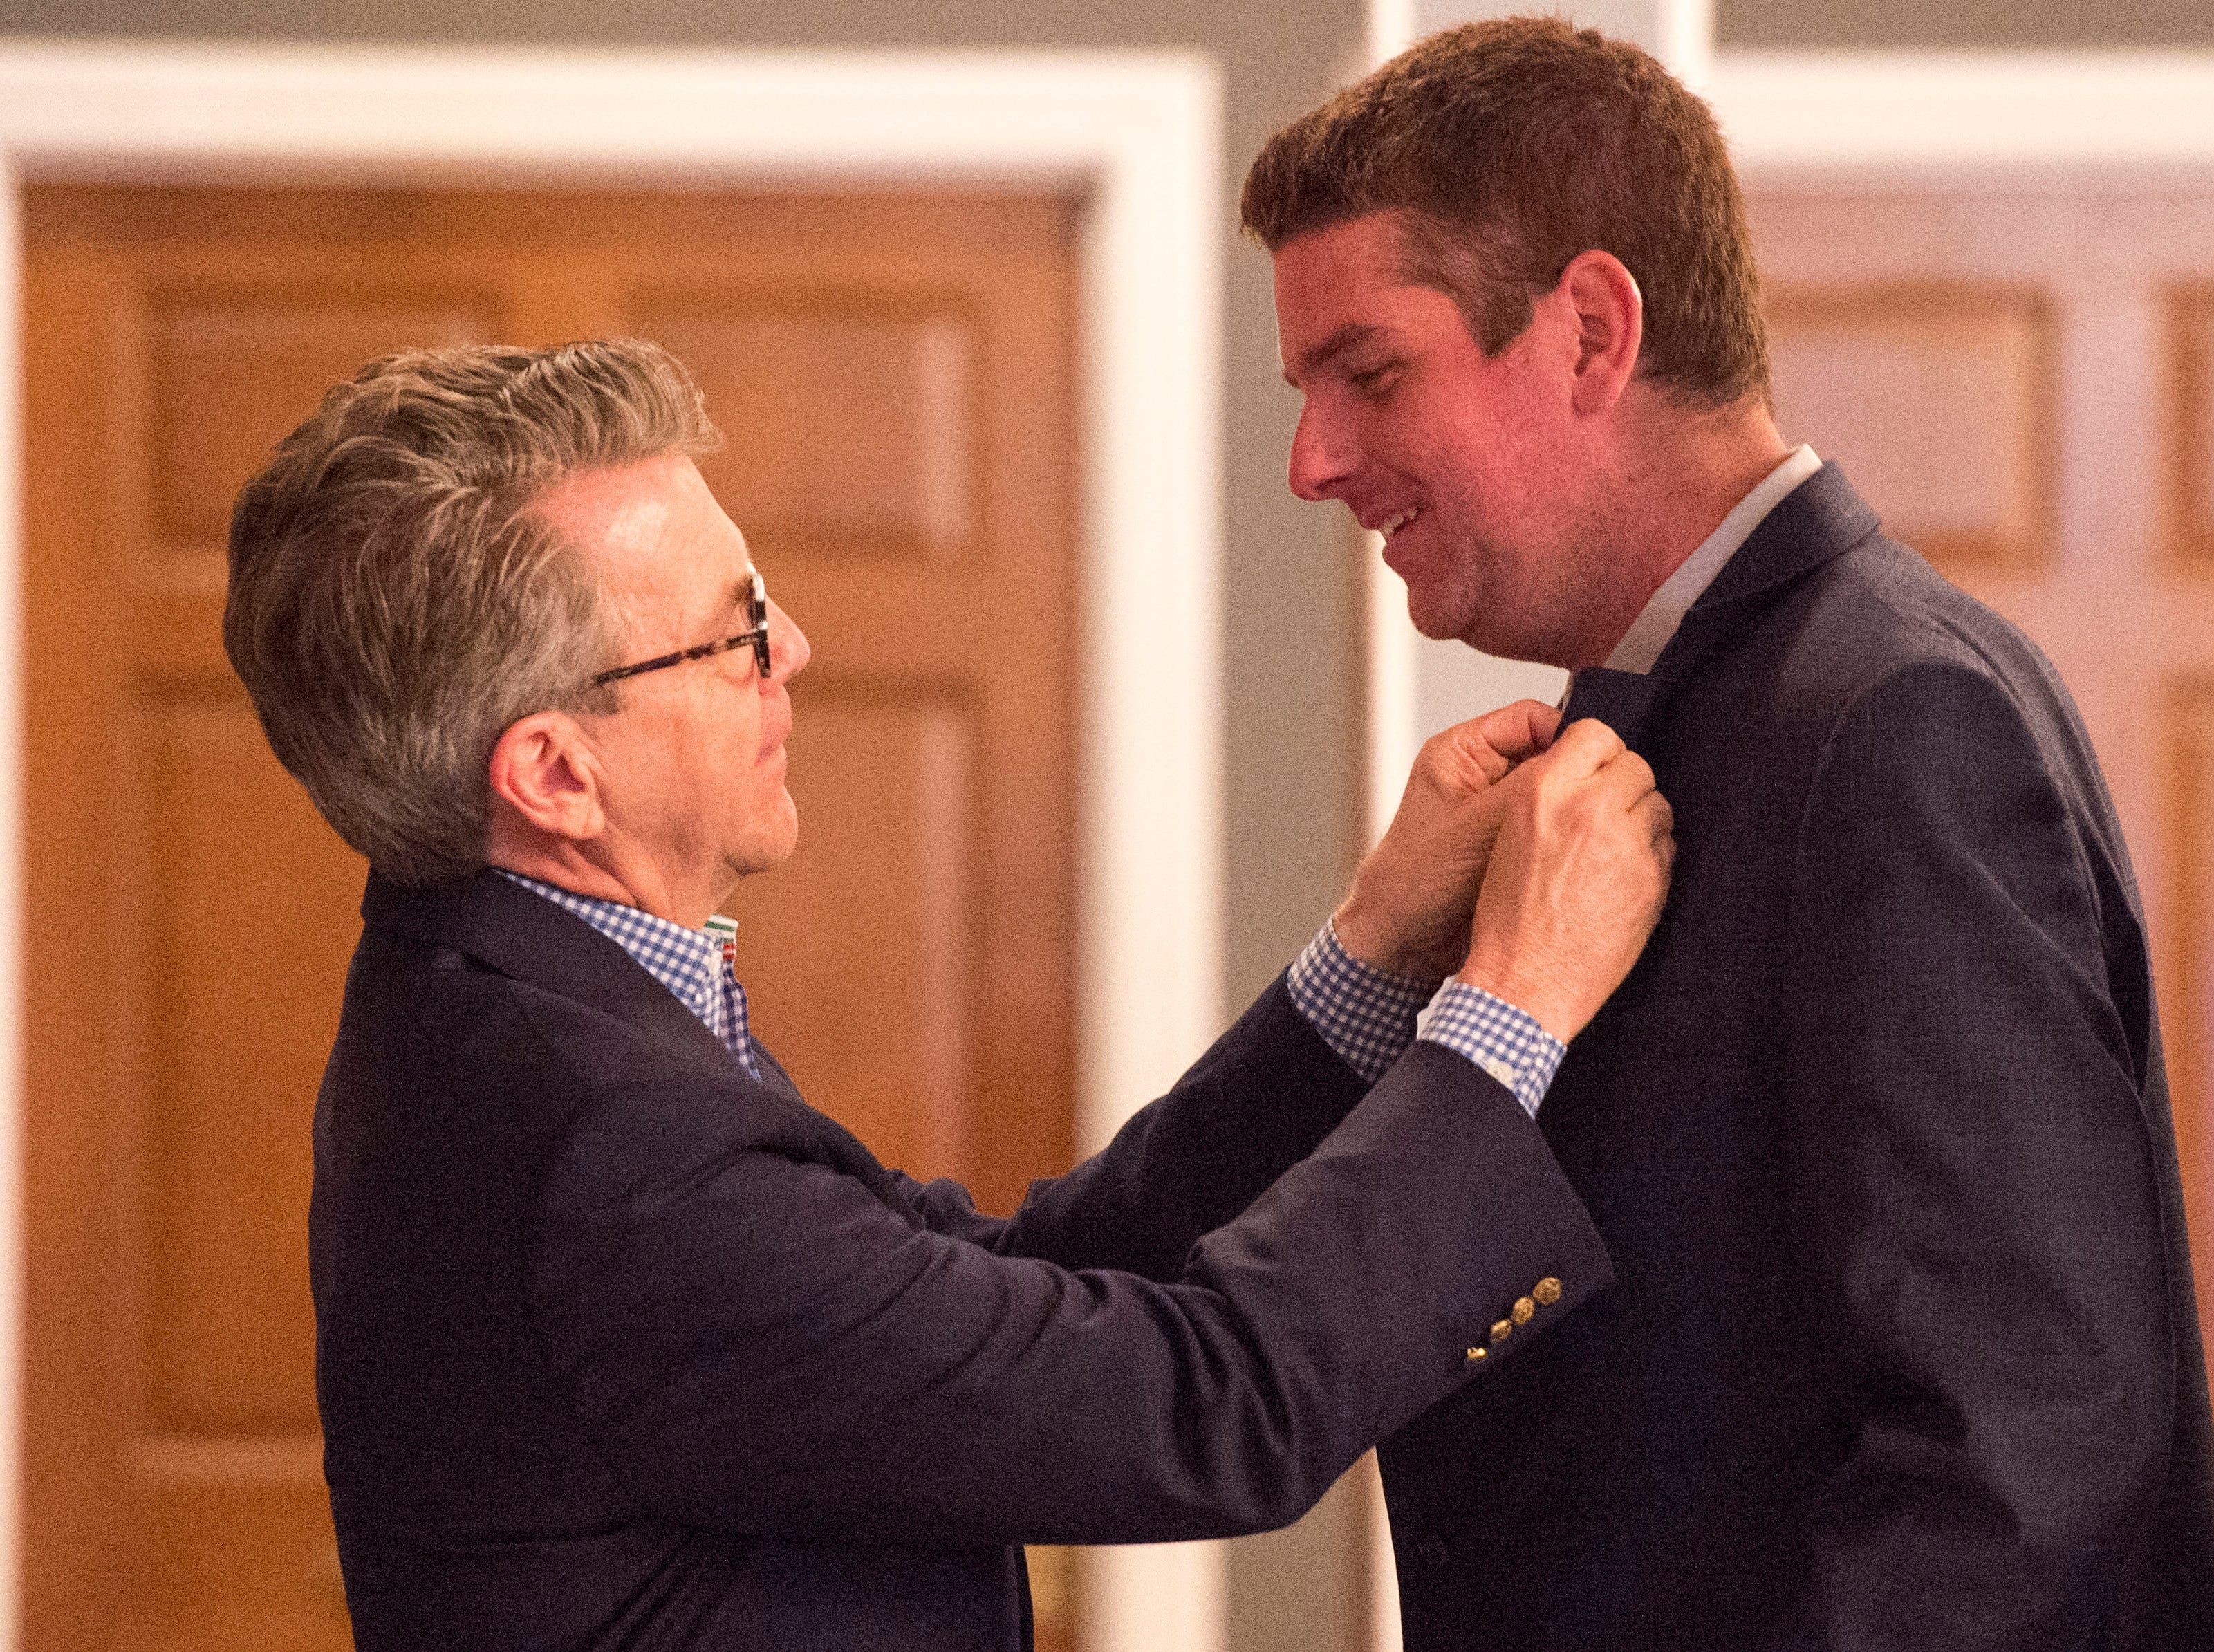 Evansville Mayor Lloyd Winnecke (R), left, adjust a lapel pin on city council at-large candidate Zane Clodfelter (R) during the Vanderburgh County Republican Party's watch party at Sauced! restaurant on Haynie's Corner Tuesday, May 7, 2019.